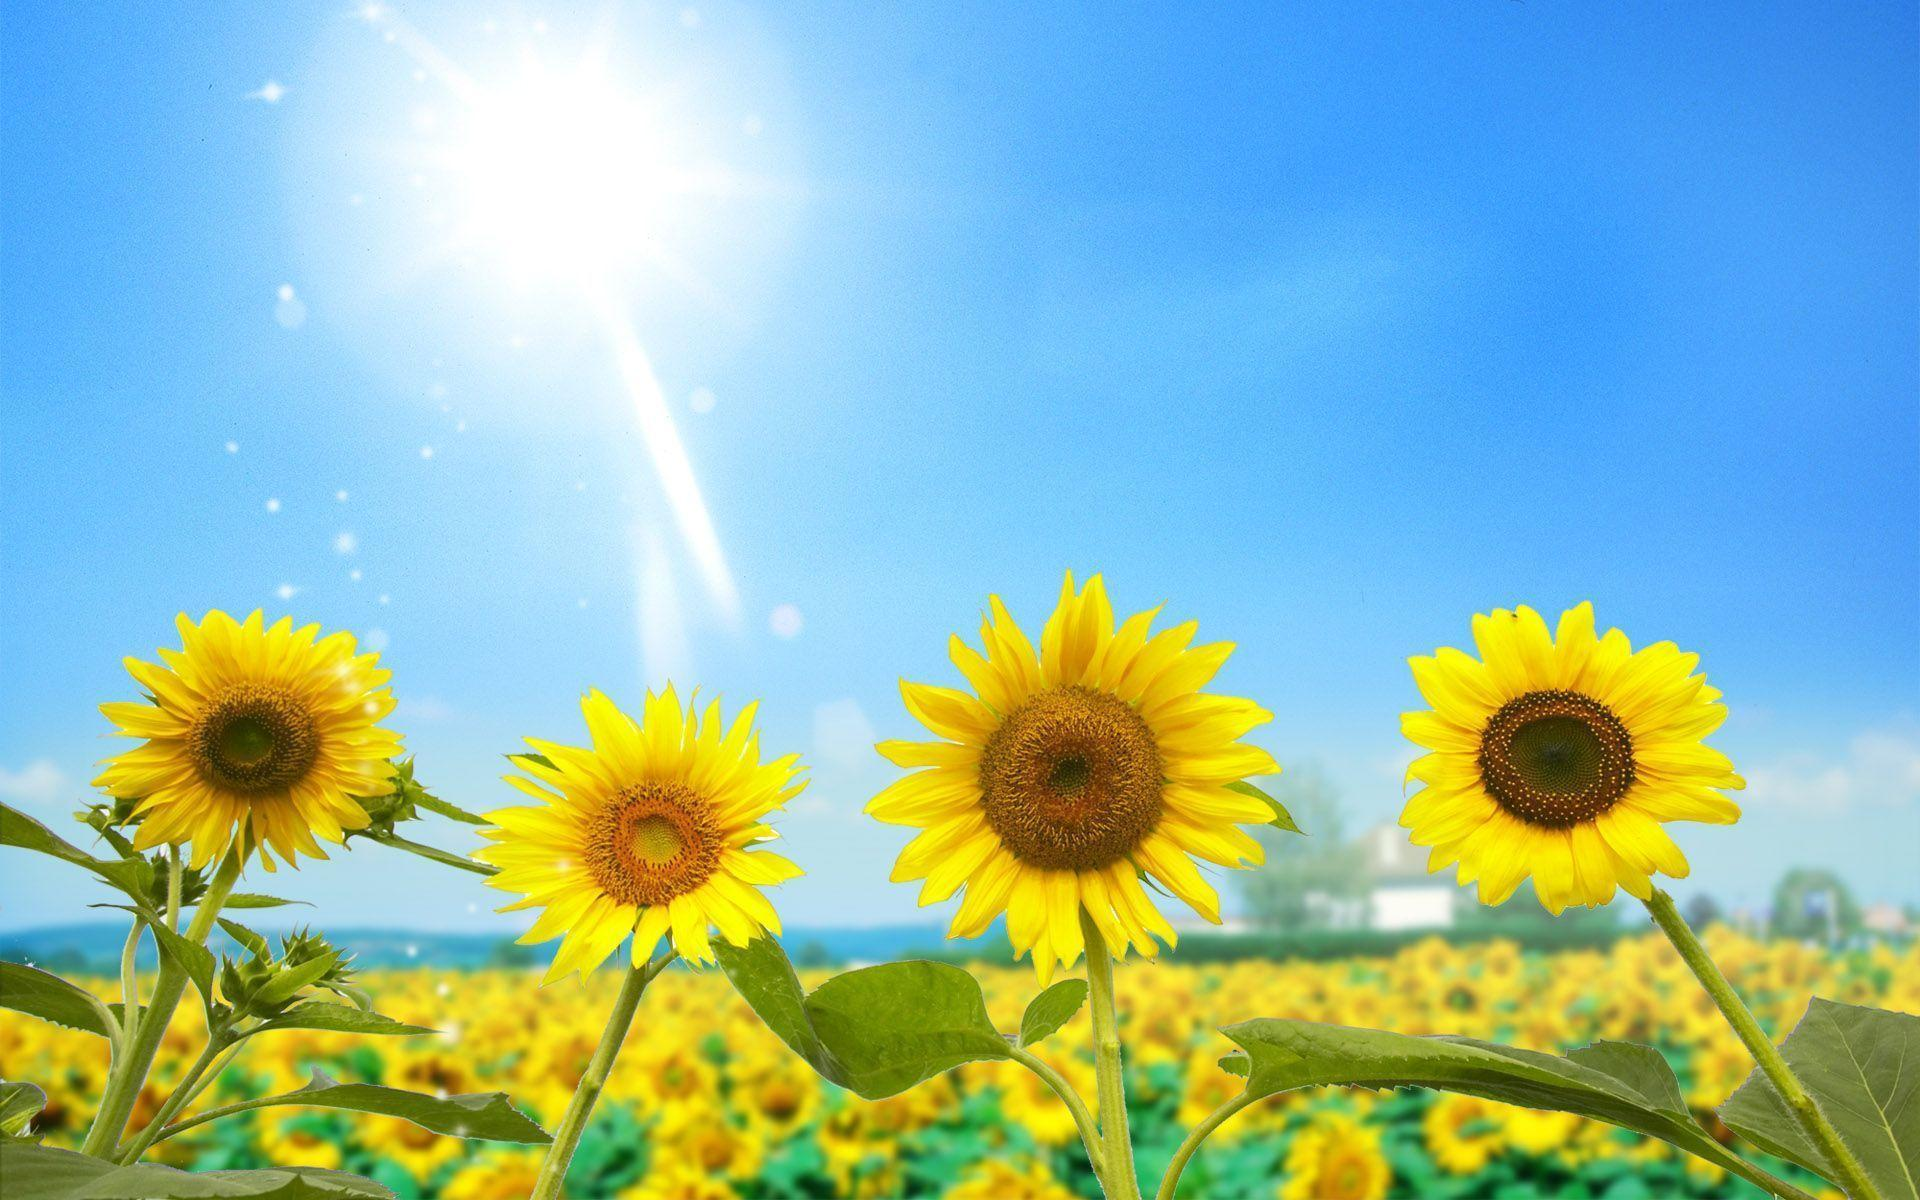 Sunflower Wallpaper Free Download 12583 Full HD Wallpaper Desktop .